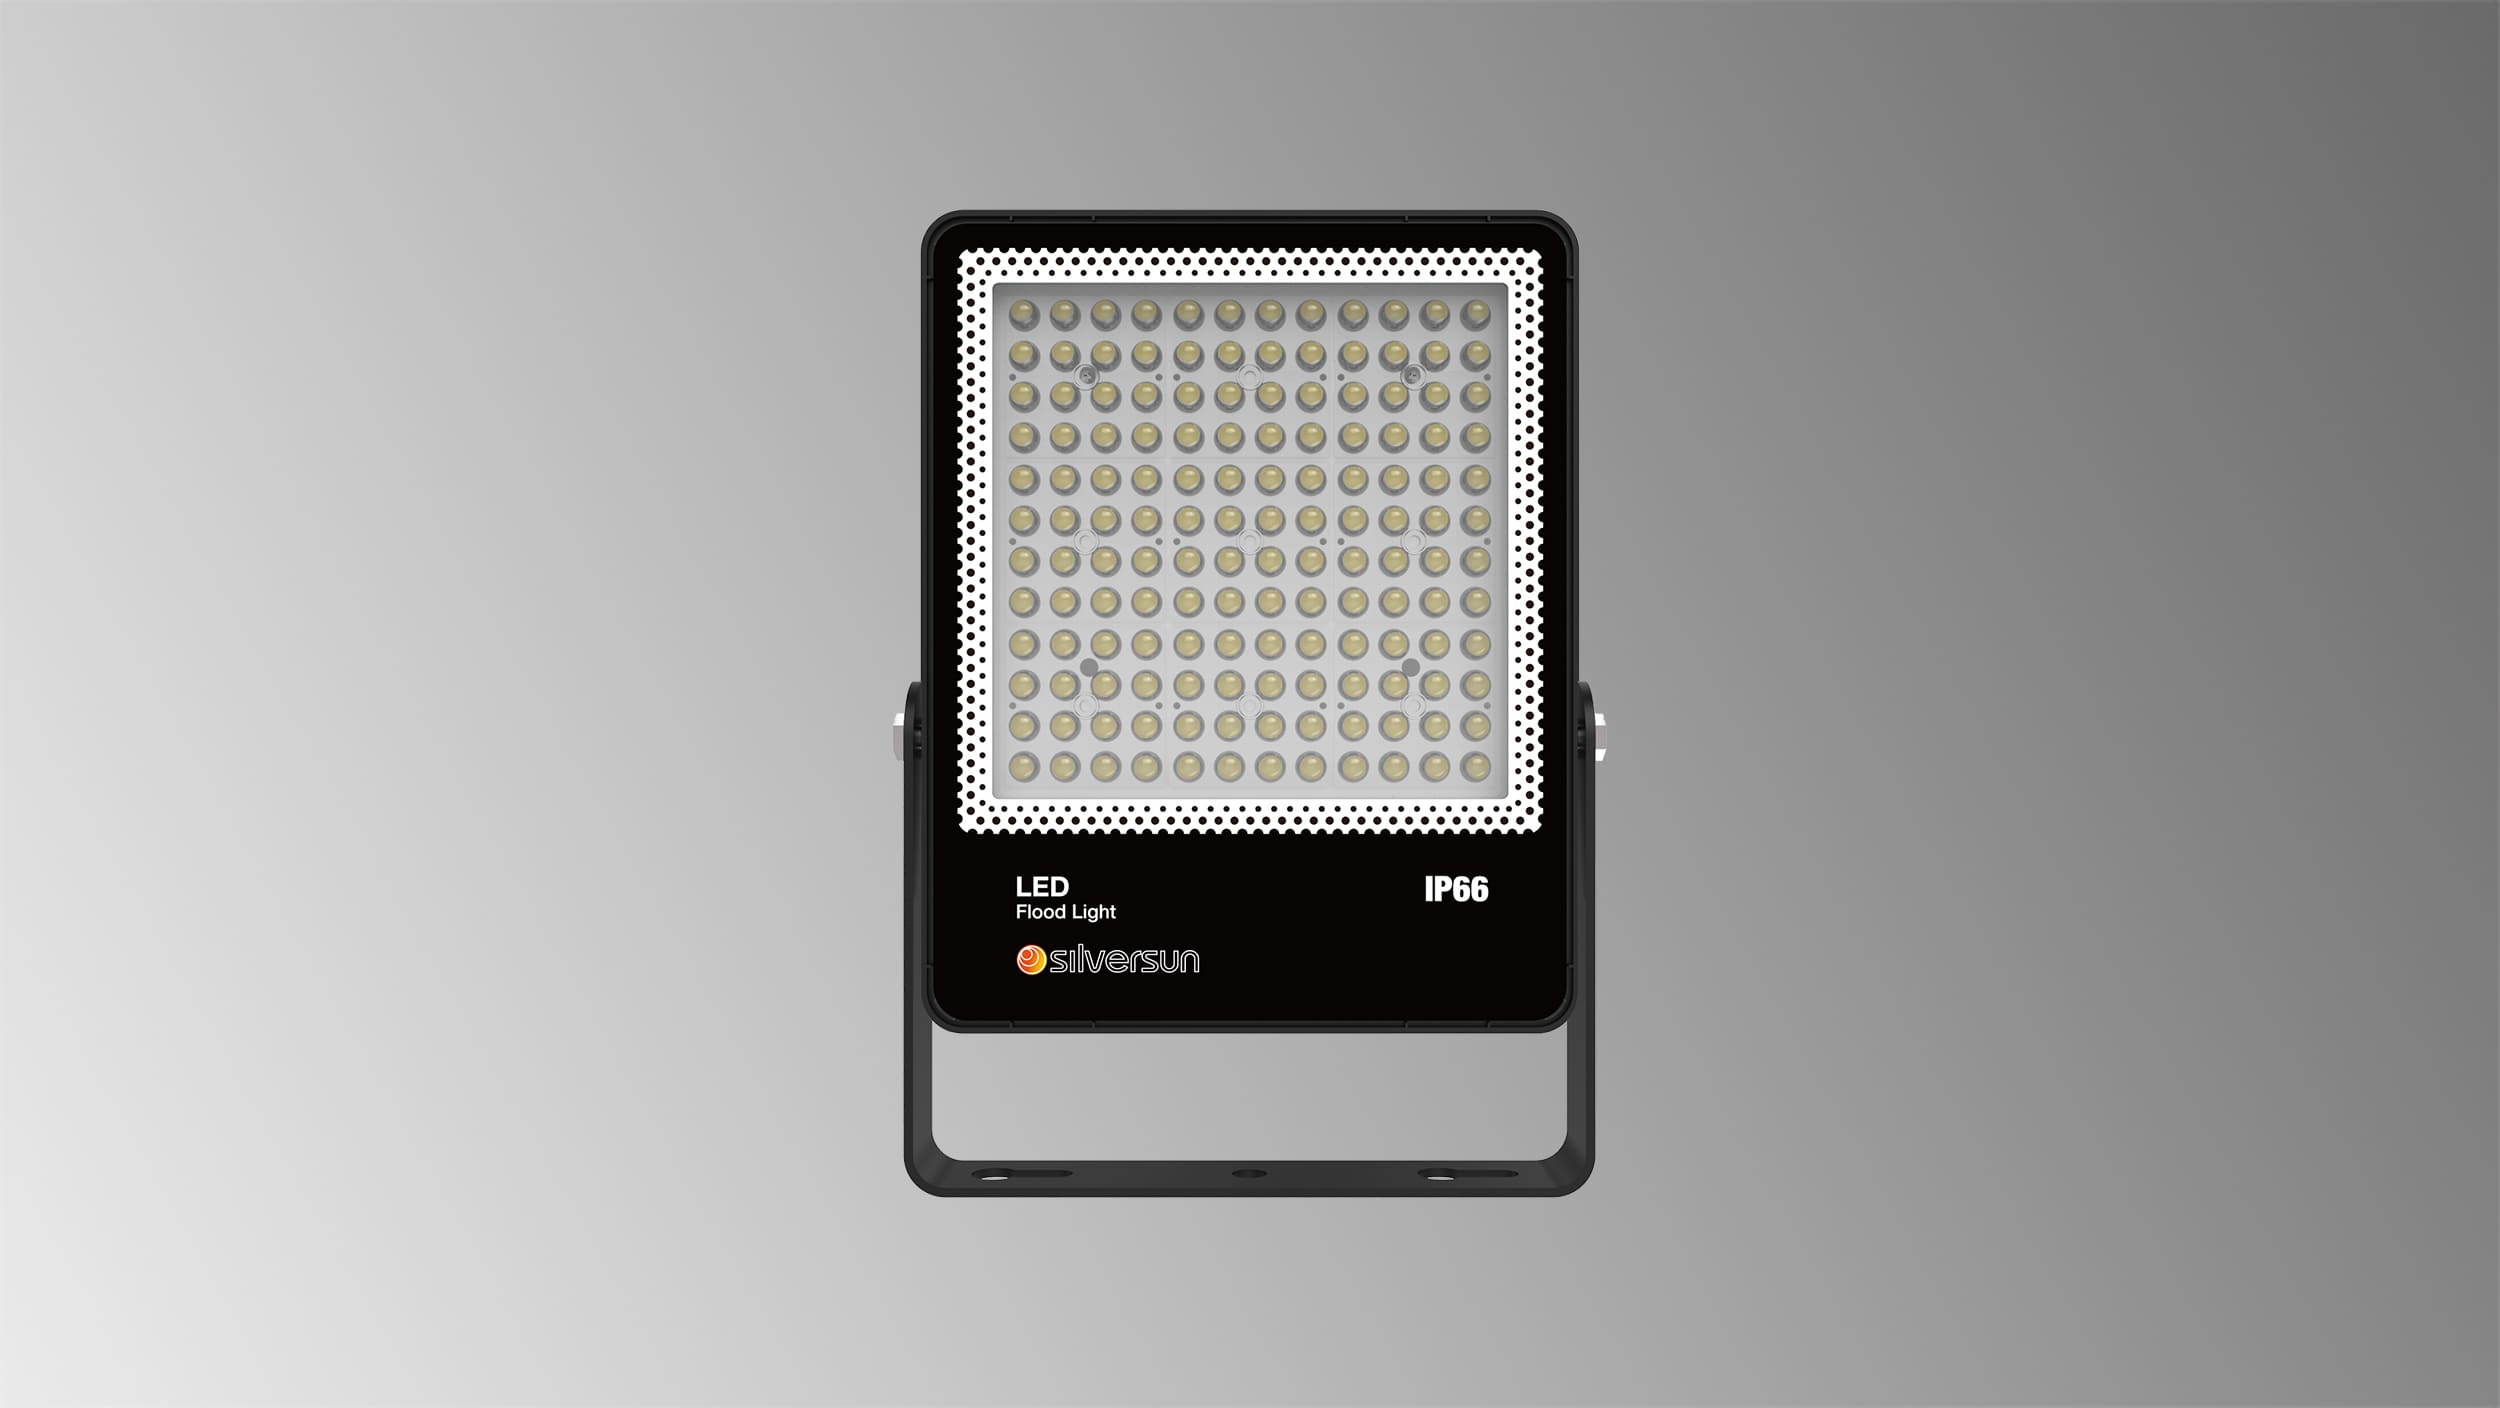 Standard BASIC Flood light